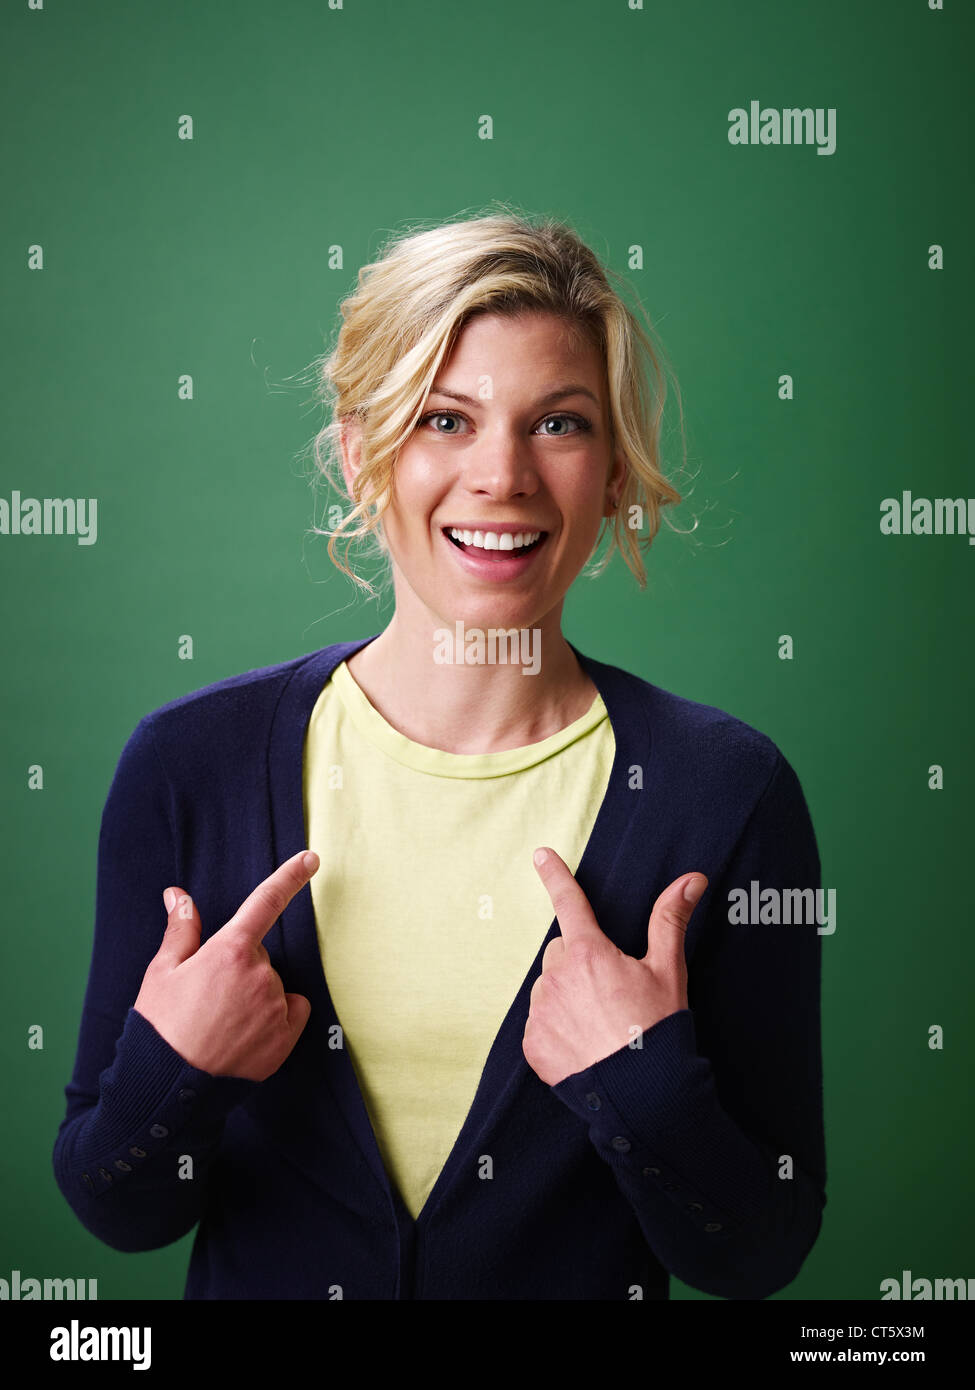 young woman pointing at herself against green background and looking at camera Stock Photo